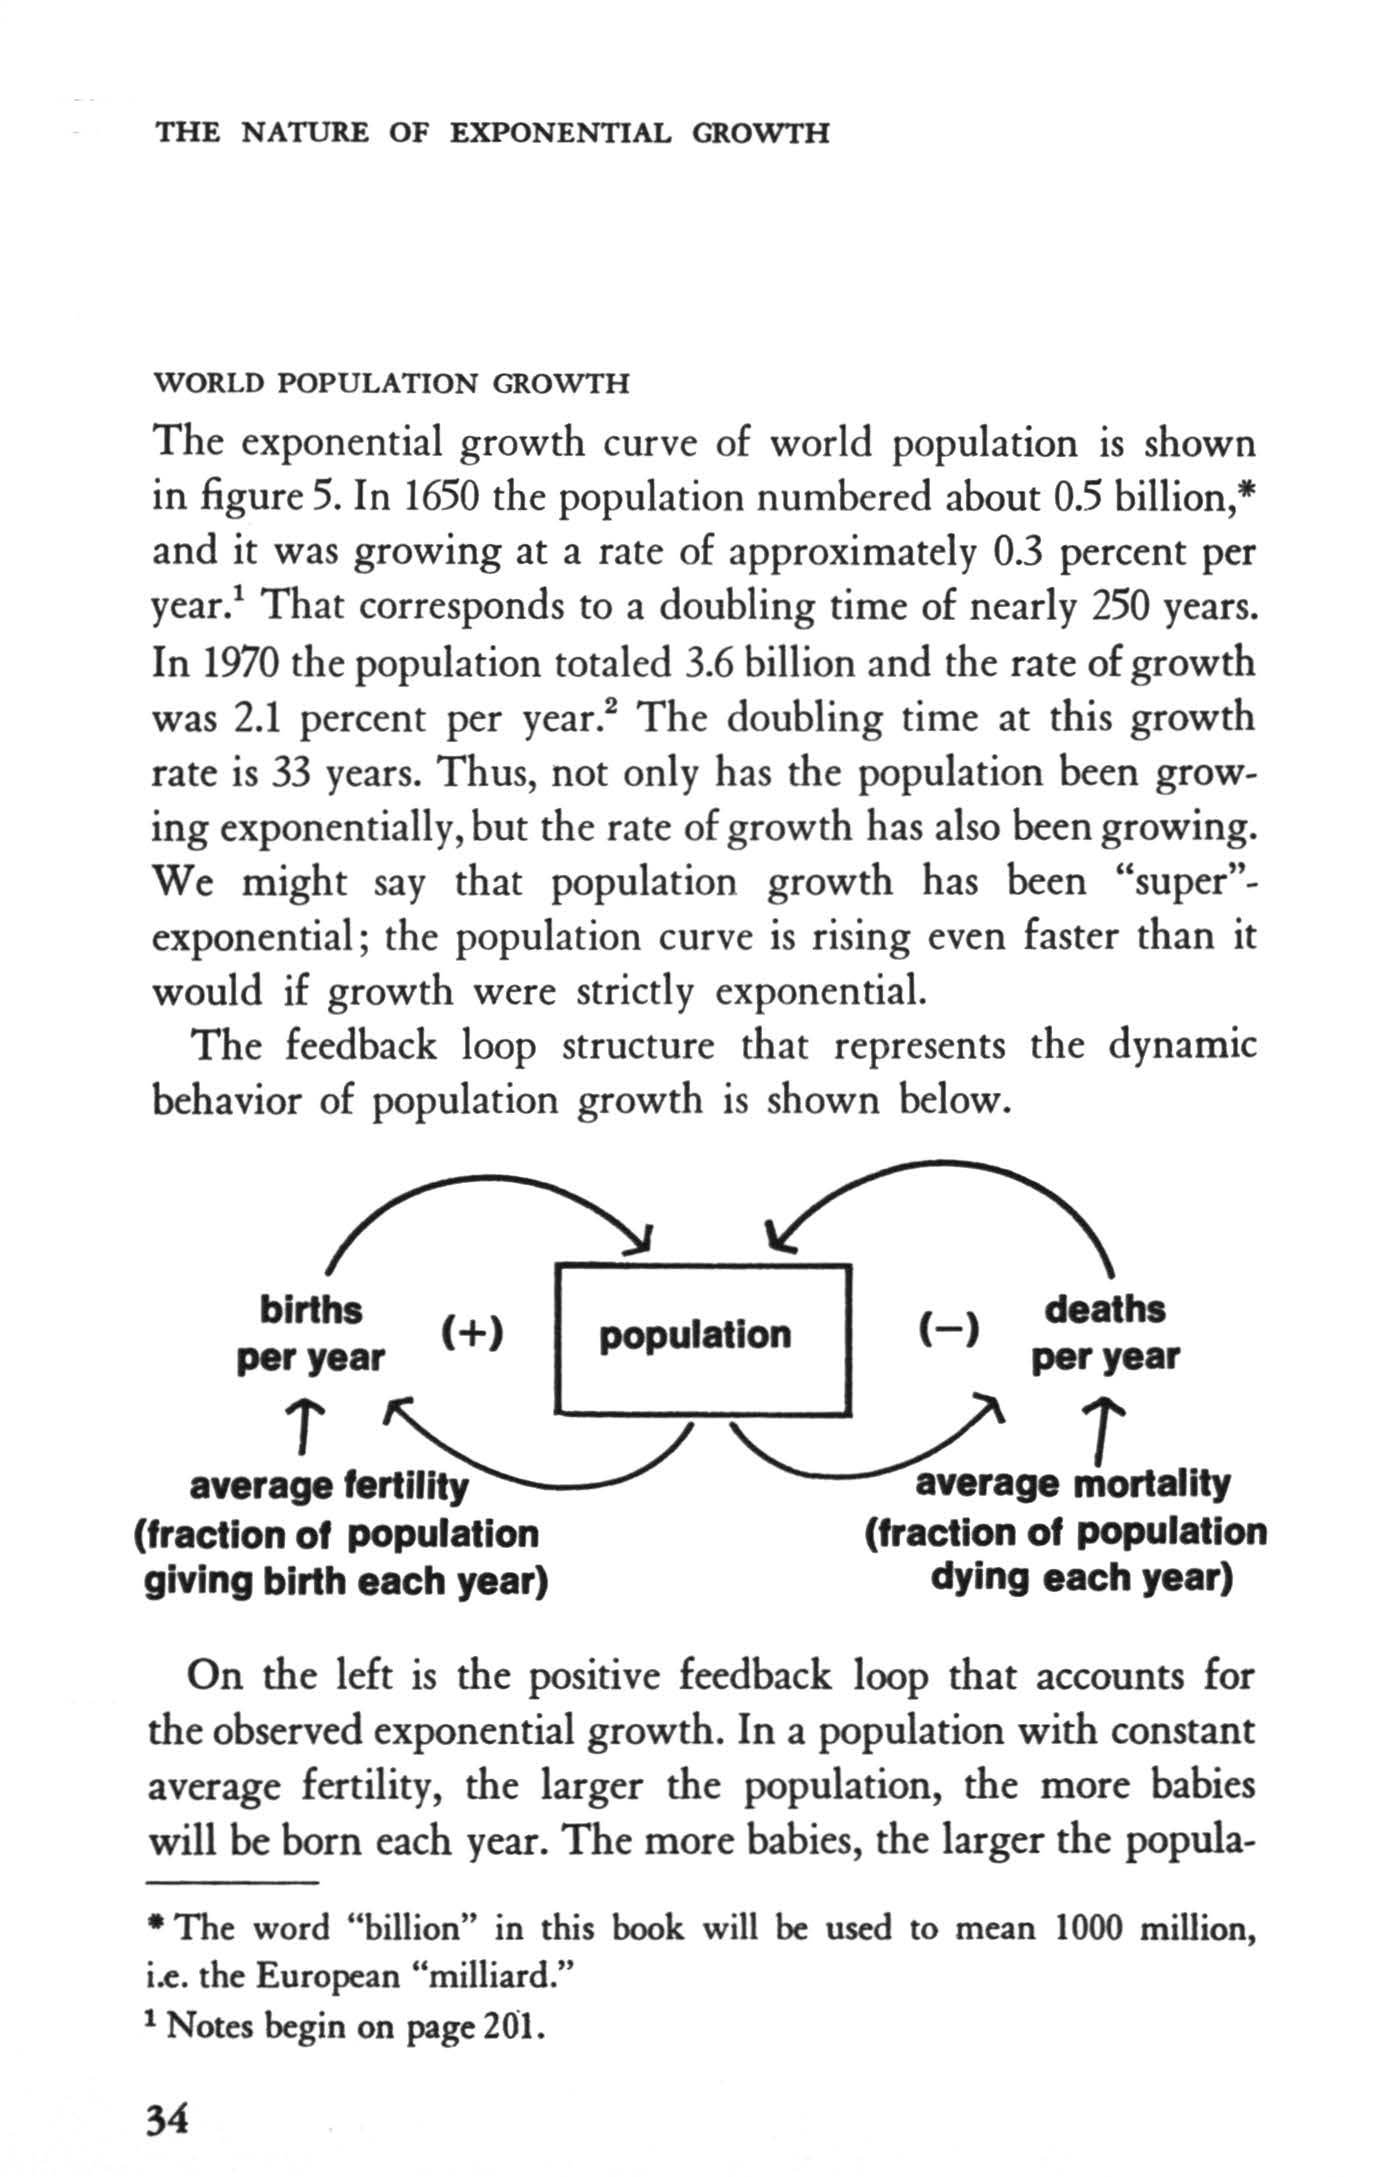 THE NATURE OF EXPONENTAL GROWTH WORLD POPULATON GROWTH The exponential growth curve of world population is shown in figure 5. n 1650 the population numbered about 0.